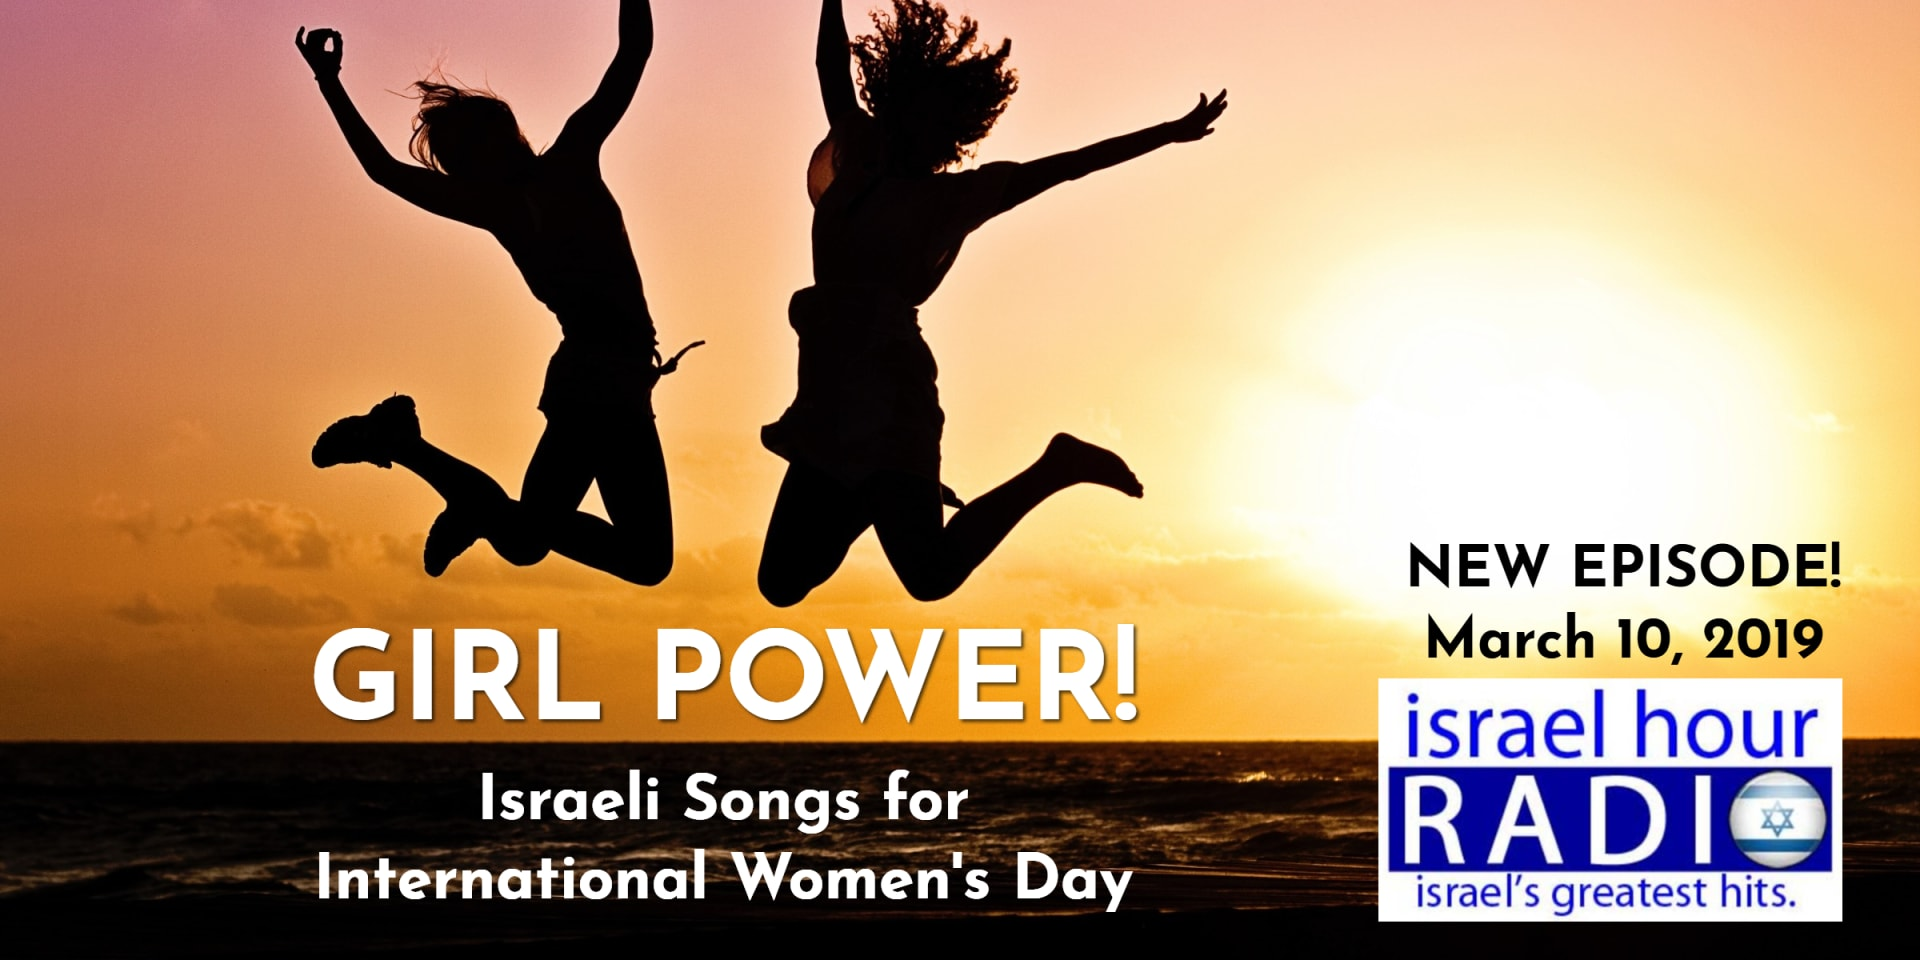 Israel Hour Radio: March 10, 2019 — MyIsraeliMusic com